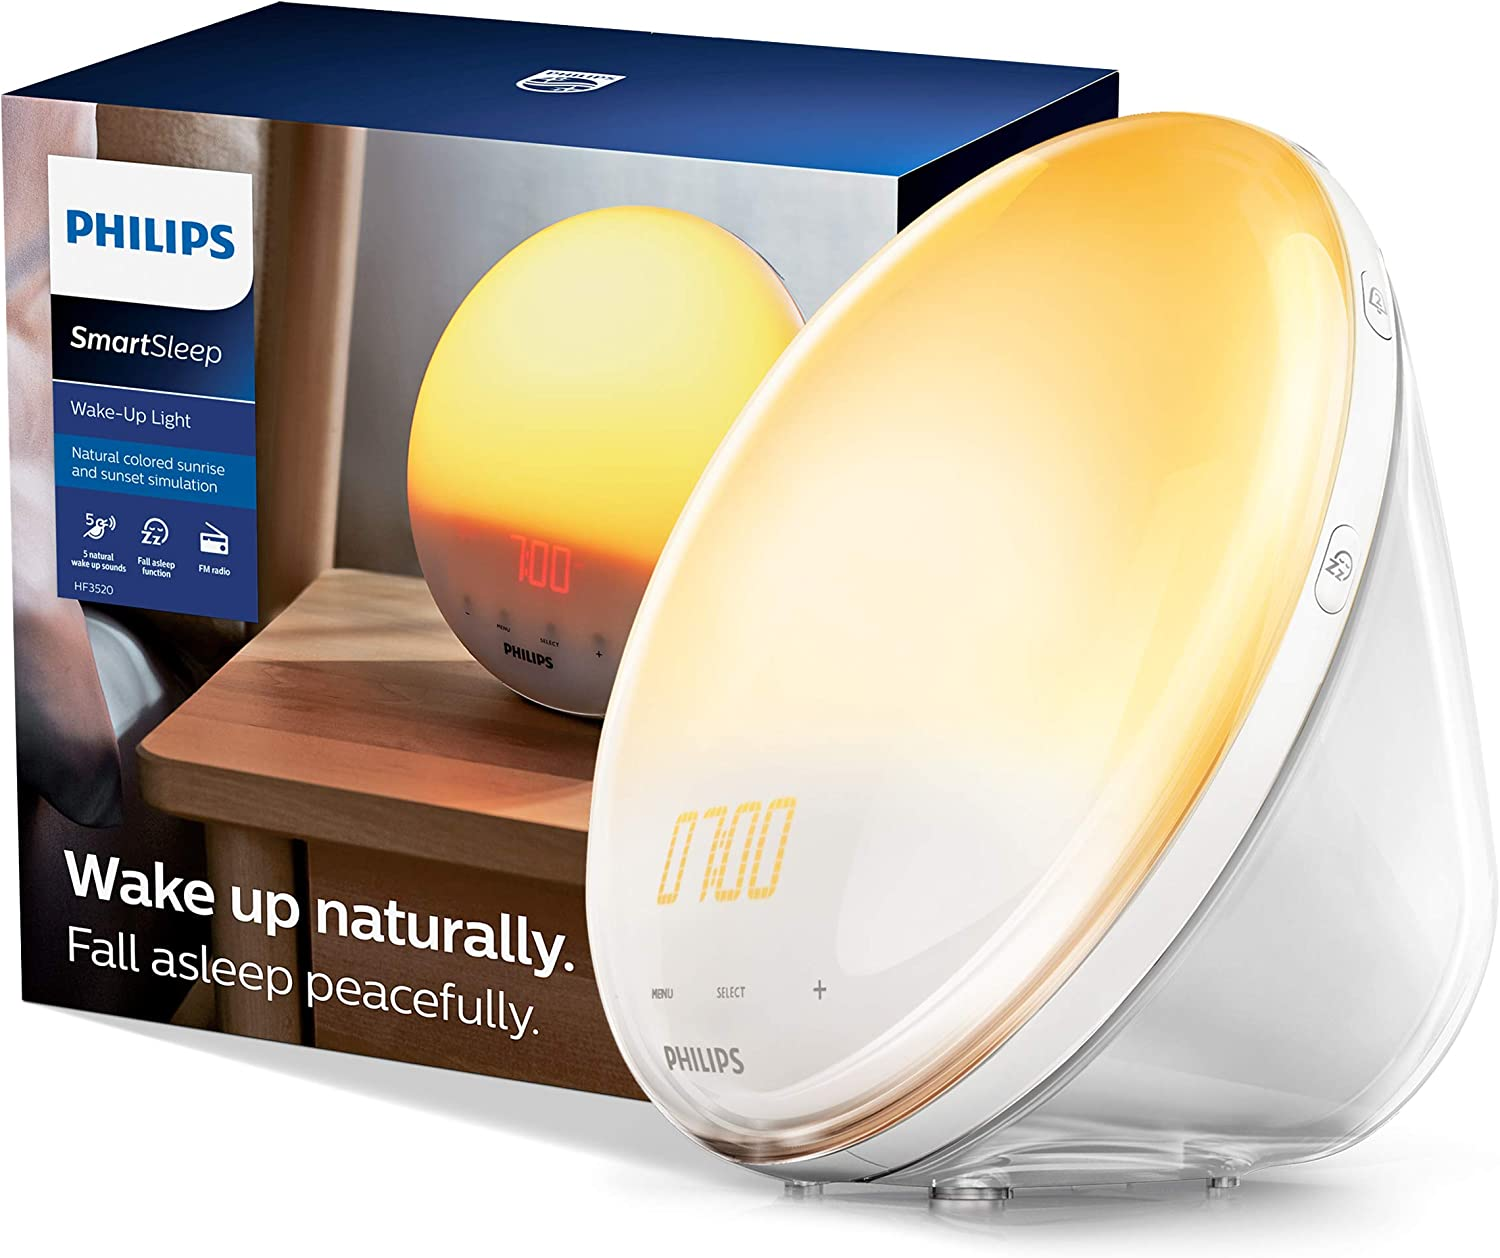 The bedroom is a place to relax after a hard-working day, so choosing a suitable night lamp is very important. Let show your care to your dad's sleep by sending him a SmartSleep Wake-up Light. With the colored sunrise and sunset simulation, this light will help your dad fall asleep peacefully and wake up naturally to have good health to lead your family. What a great father's day gift idea!